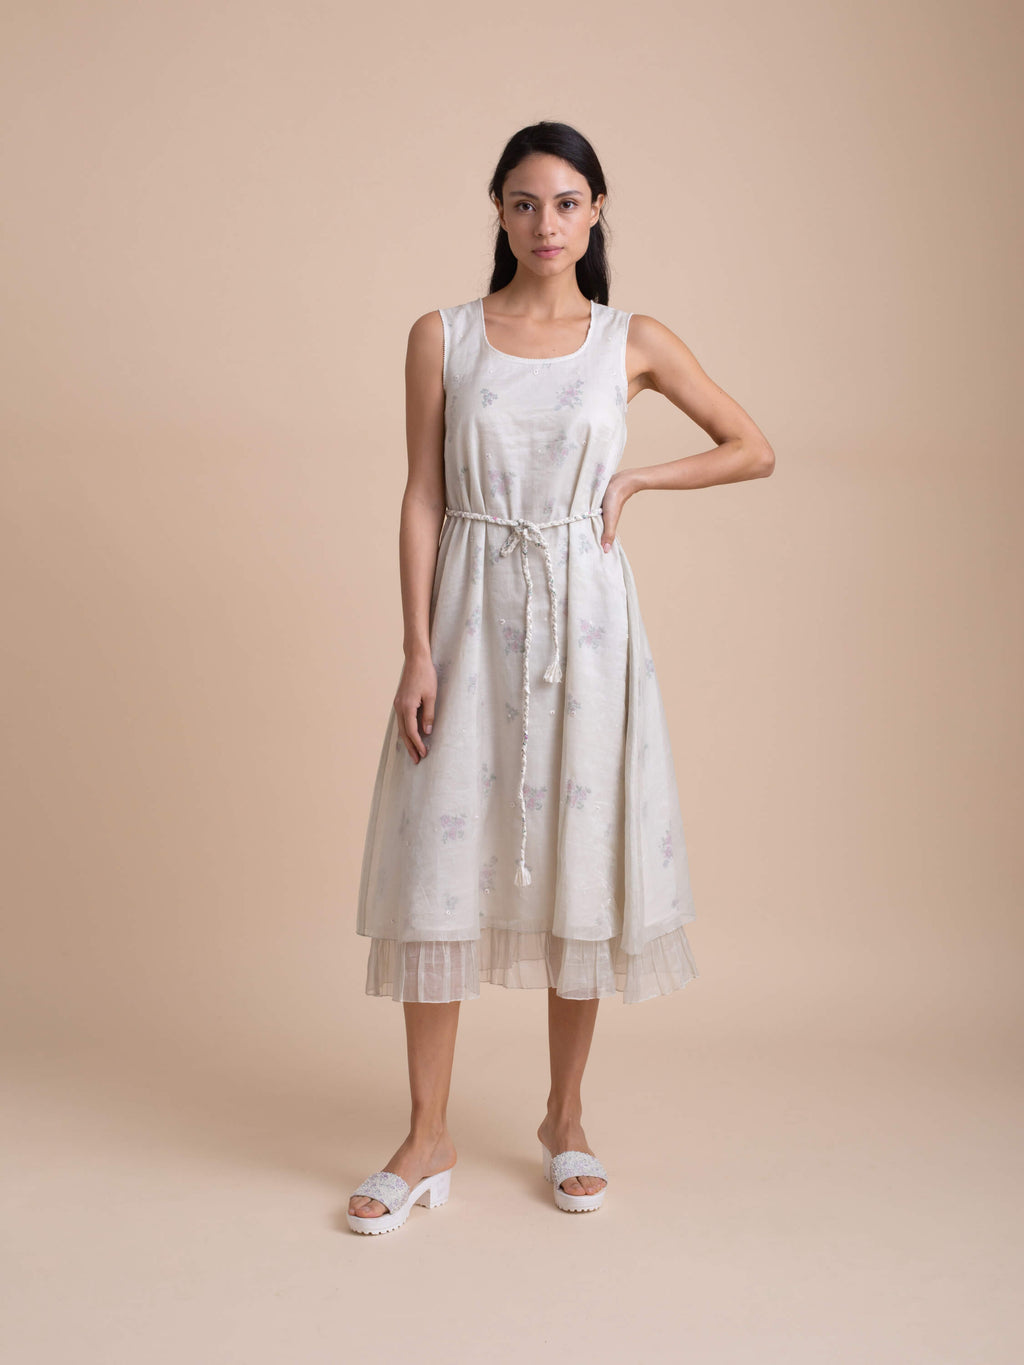 Pressed Flowers Dress - BunaStudio